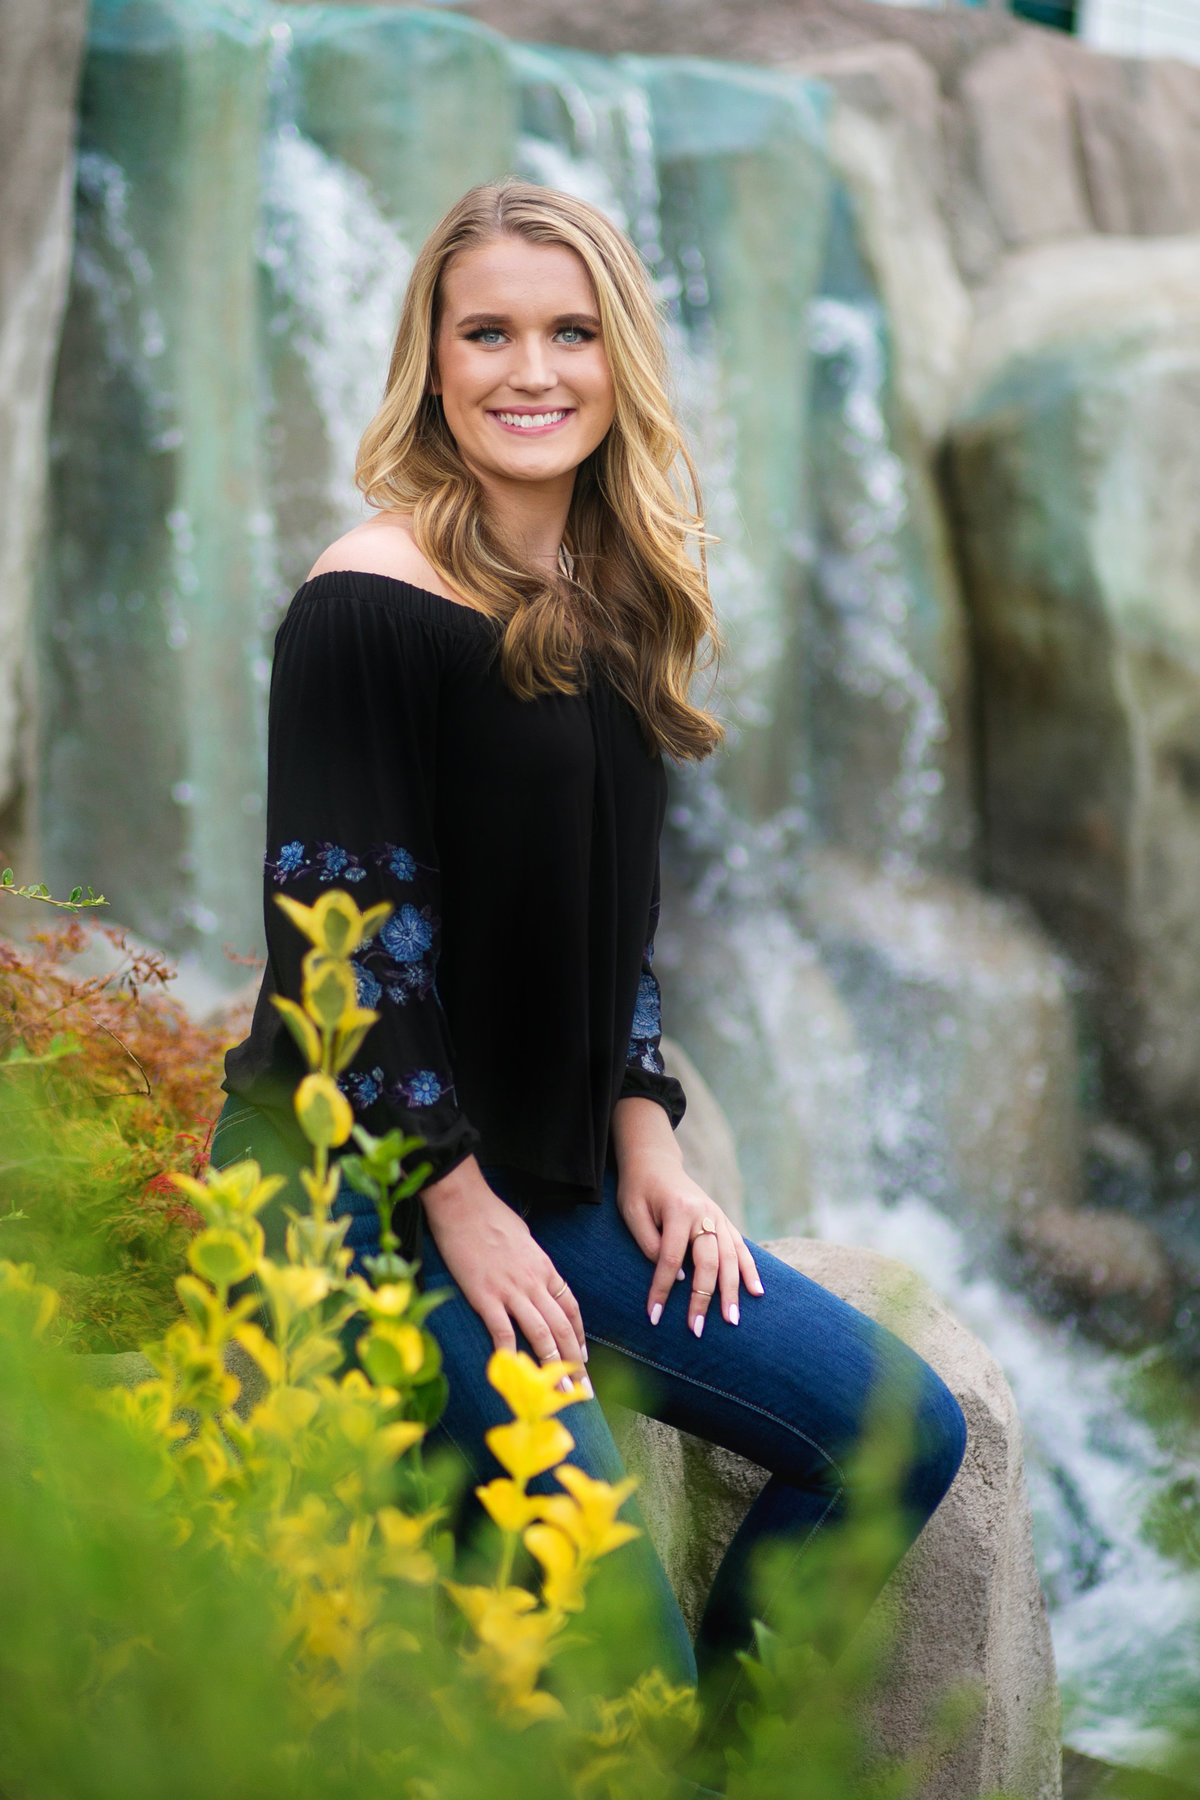 Boise-idaho-meridian-rocky-eagle-nampa-kuna-emmett-mccall-high-school-senior-photographer-lee-ann-norris064